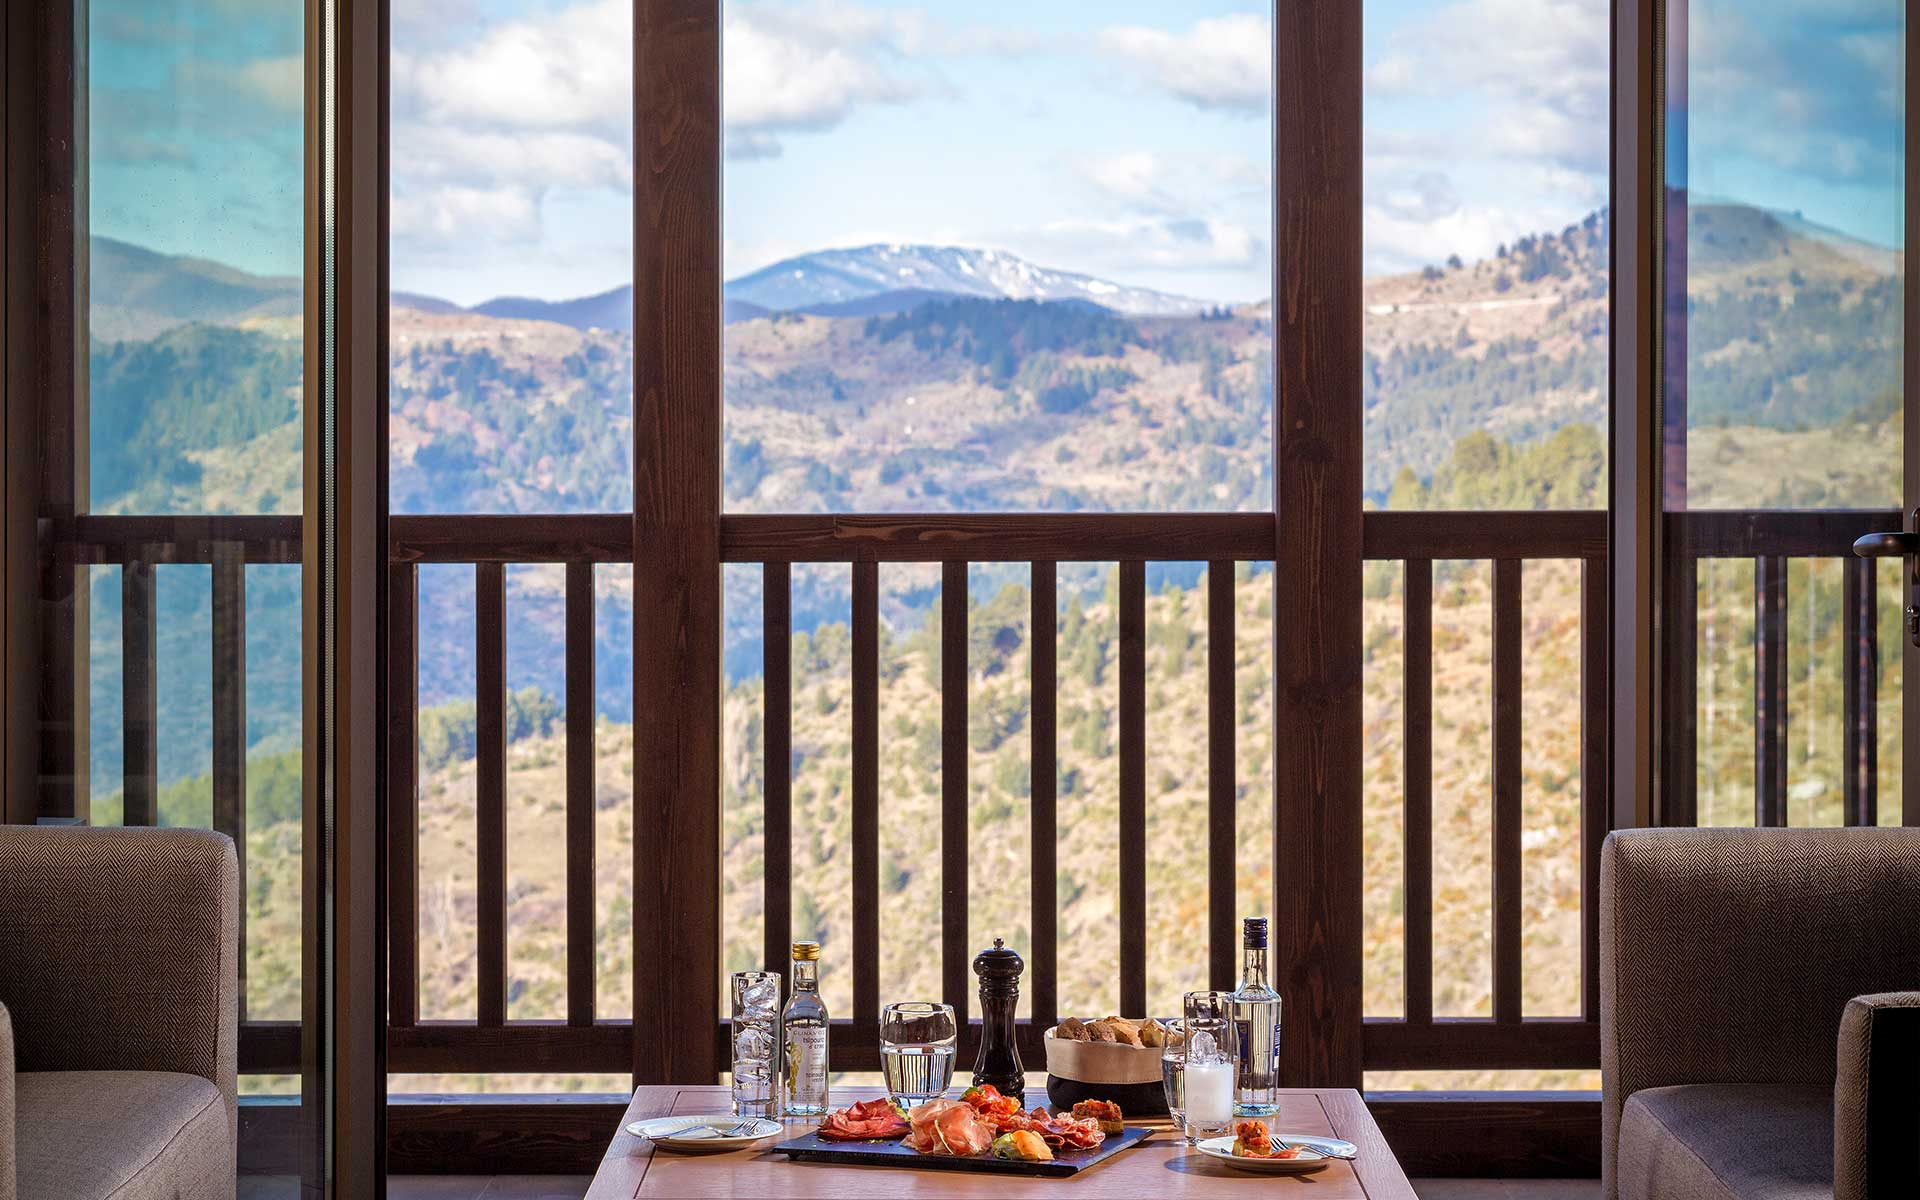 food-view-mountain-view